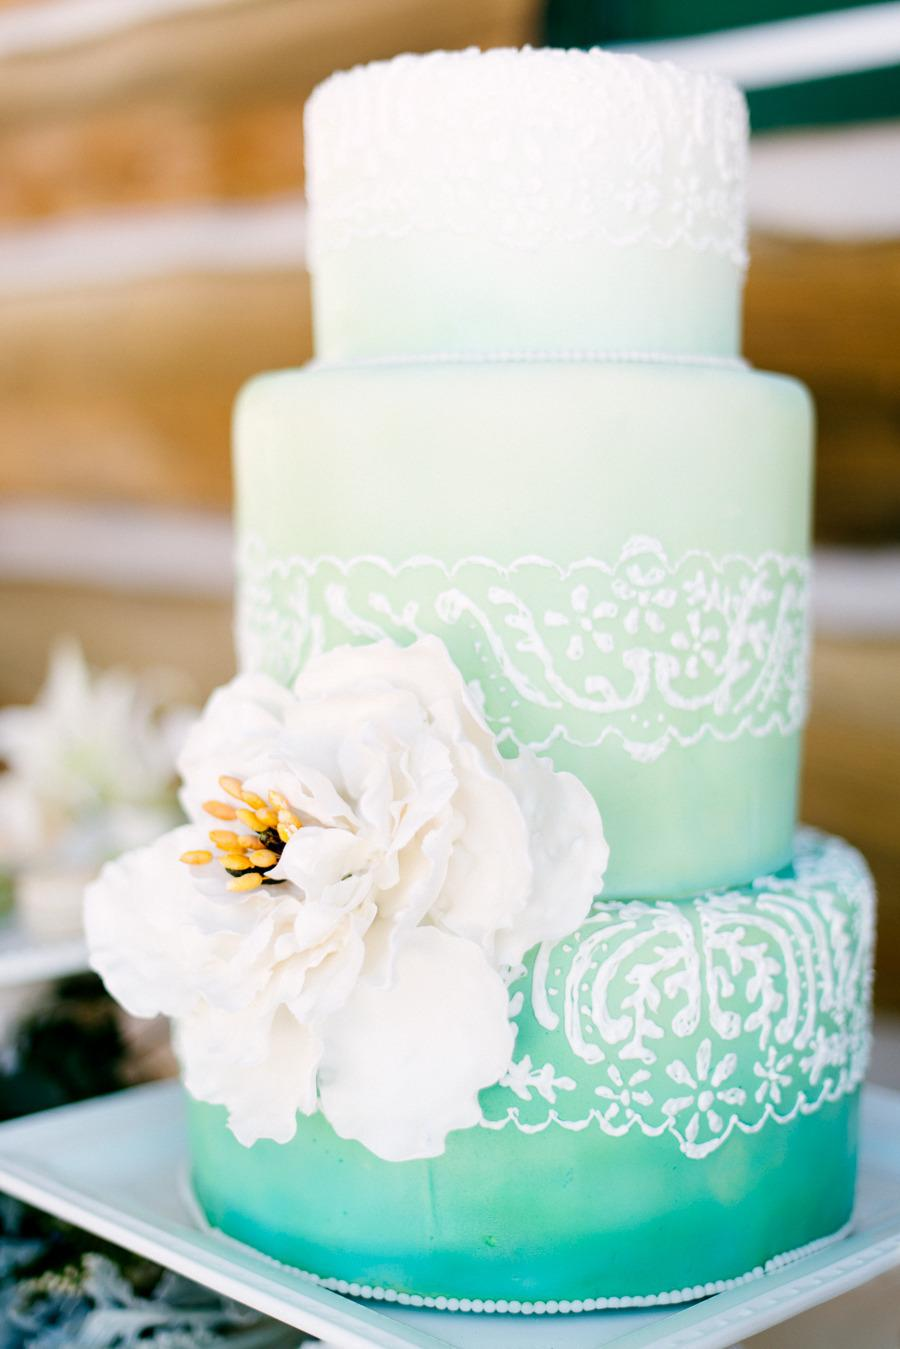 get-inspired-creative-wedding-cake-idea